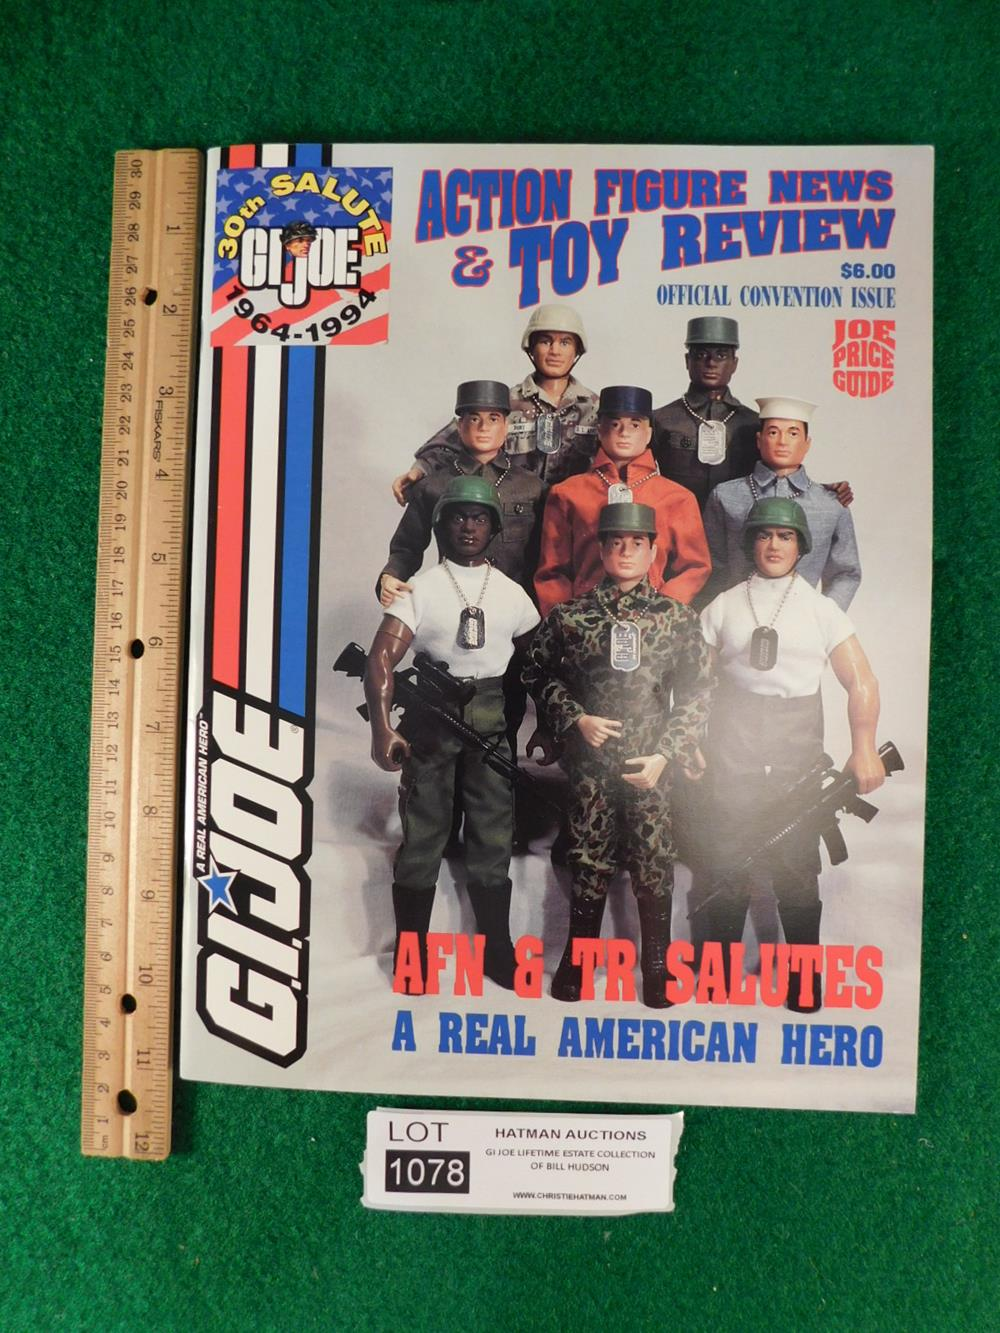 G.I. JOE ACTION FIGUIRE NEWS AND TOY REVIEW MAGAZINE